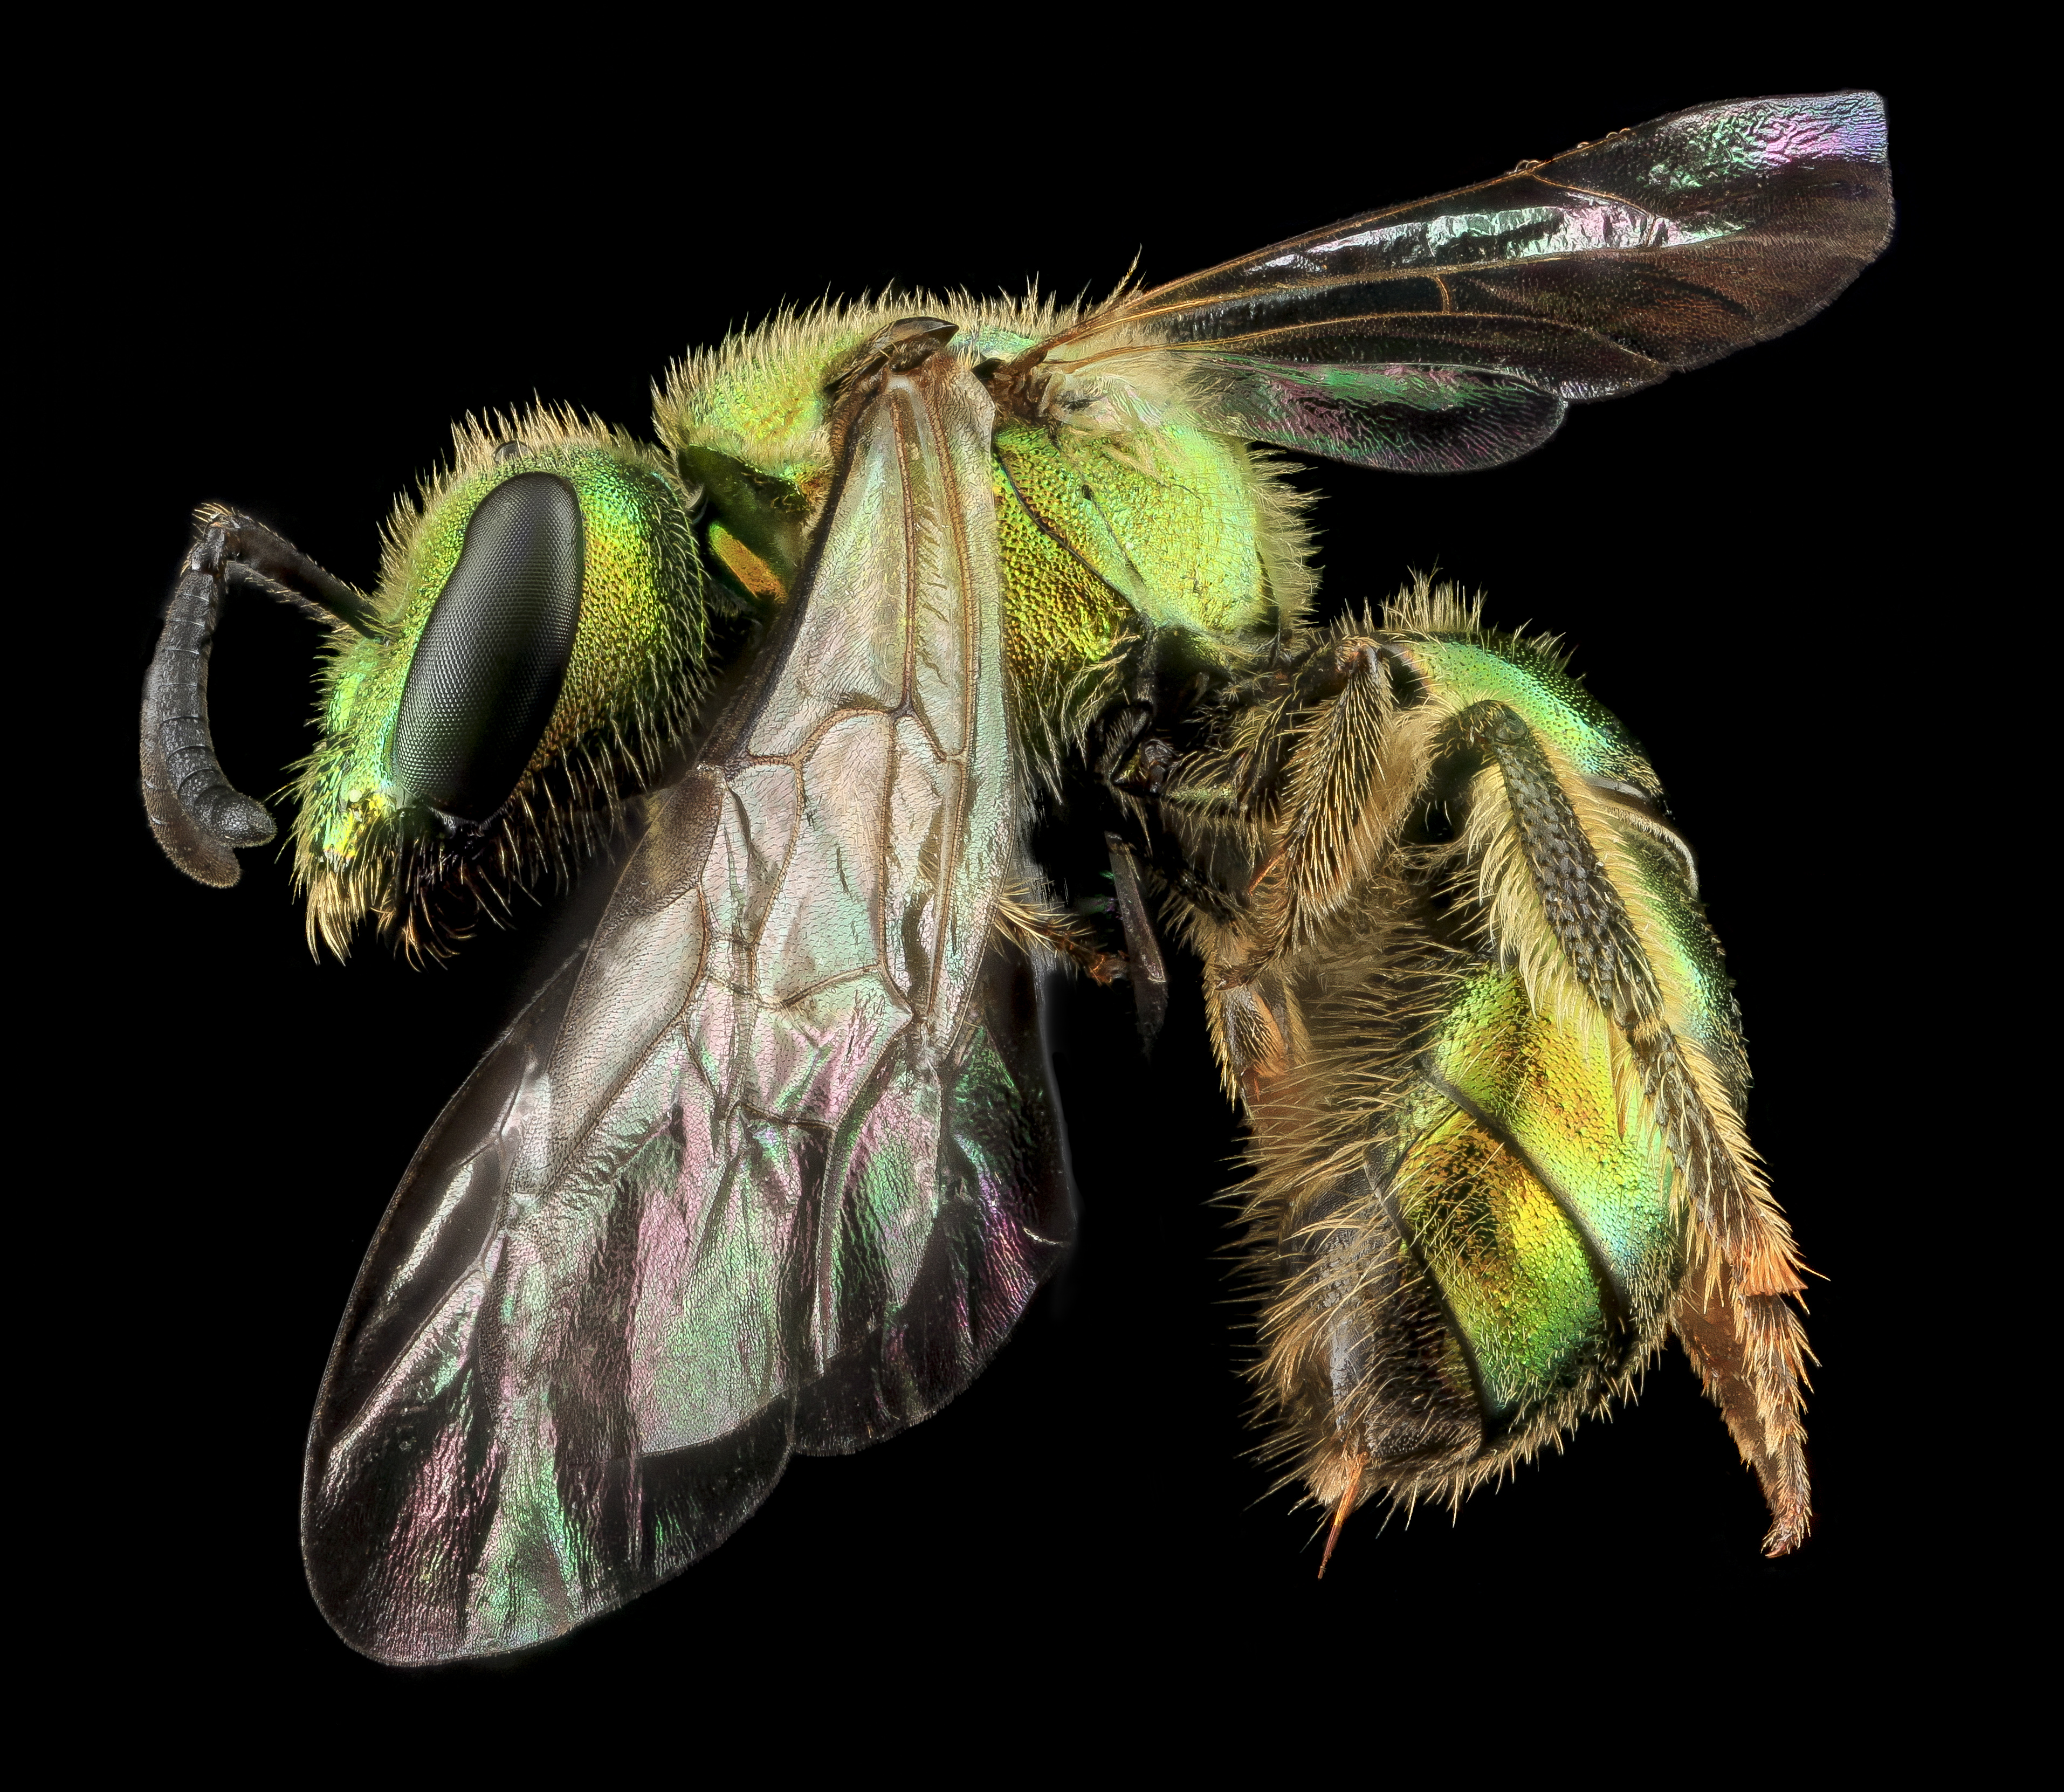 Augochlorella aurata. Photo: Sam Droege